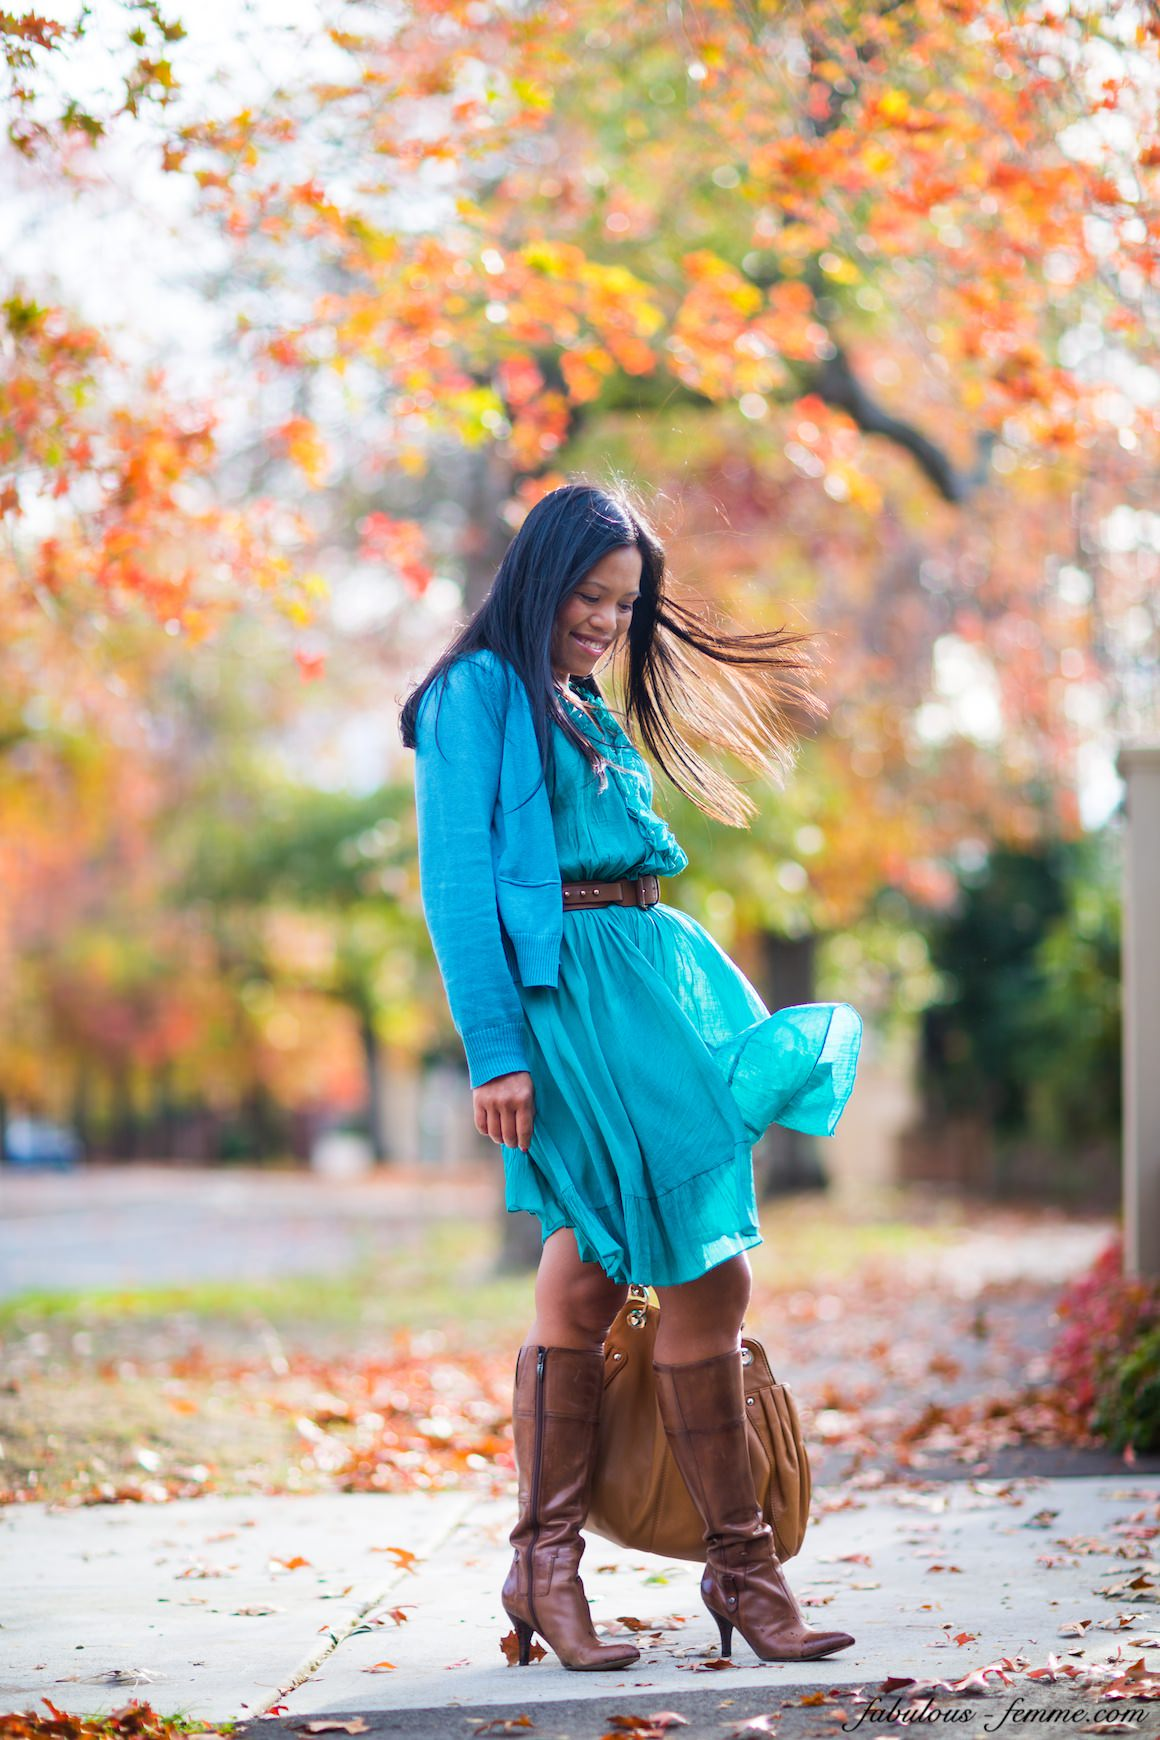 melbourne autumn fashion - ruffleld dress - blogging in melbourne